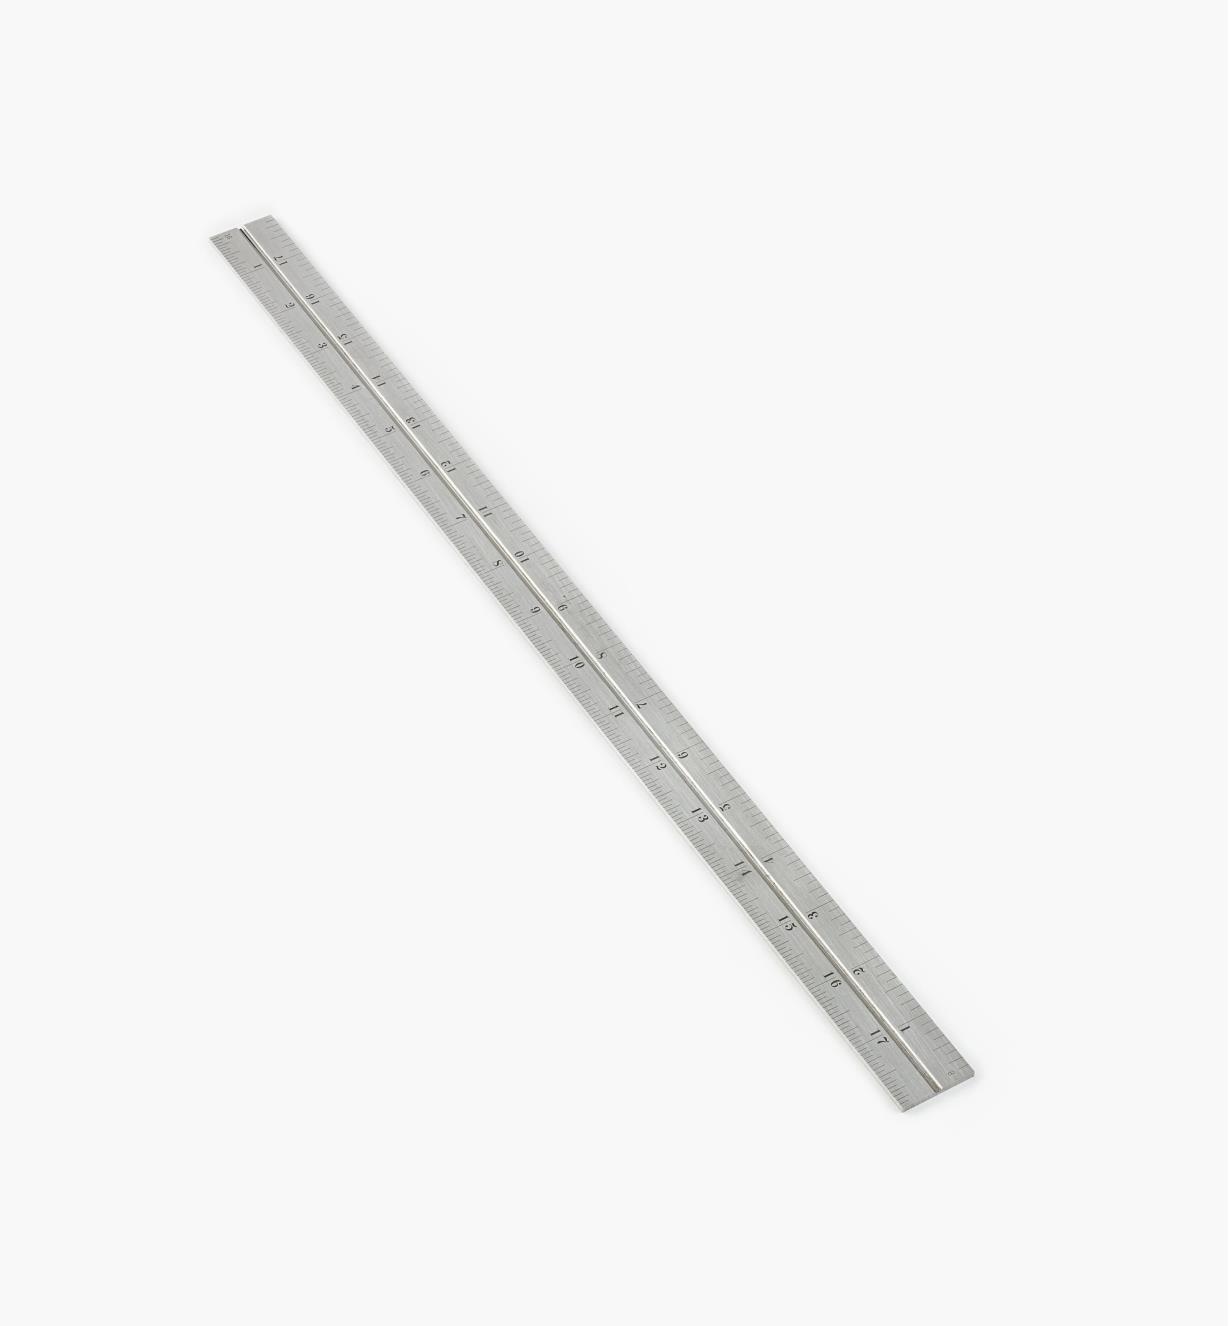 "30N0306 - 18"" Etched Steel Rule"